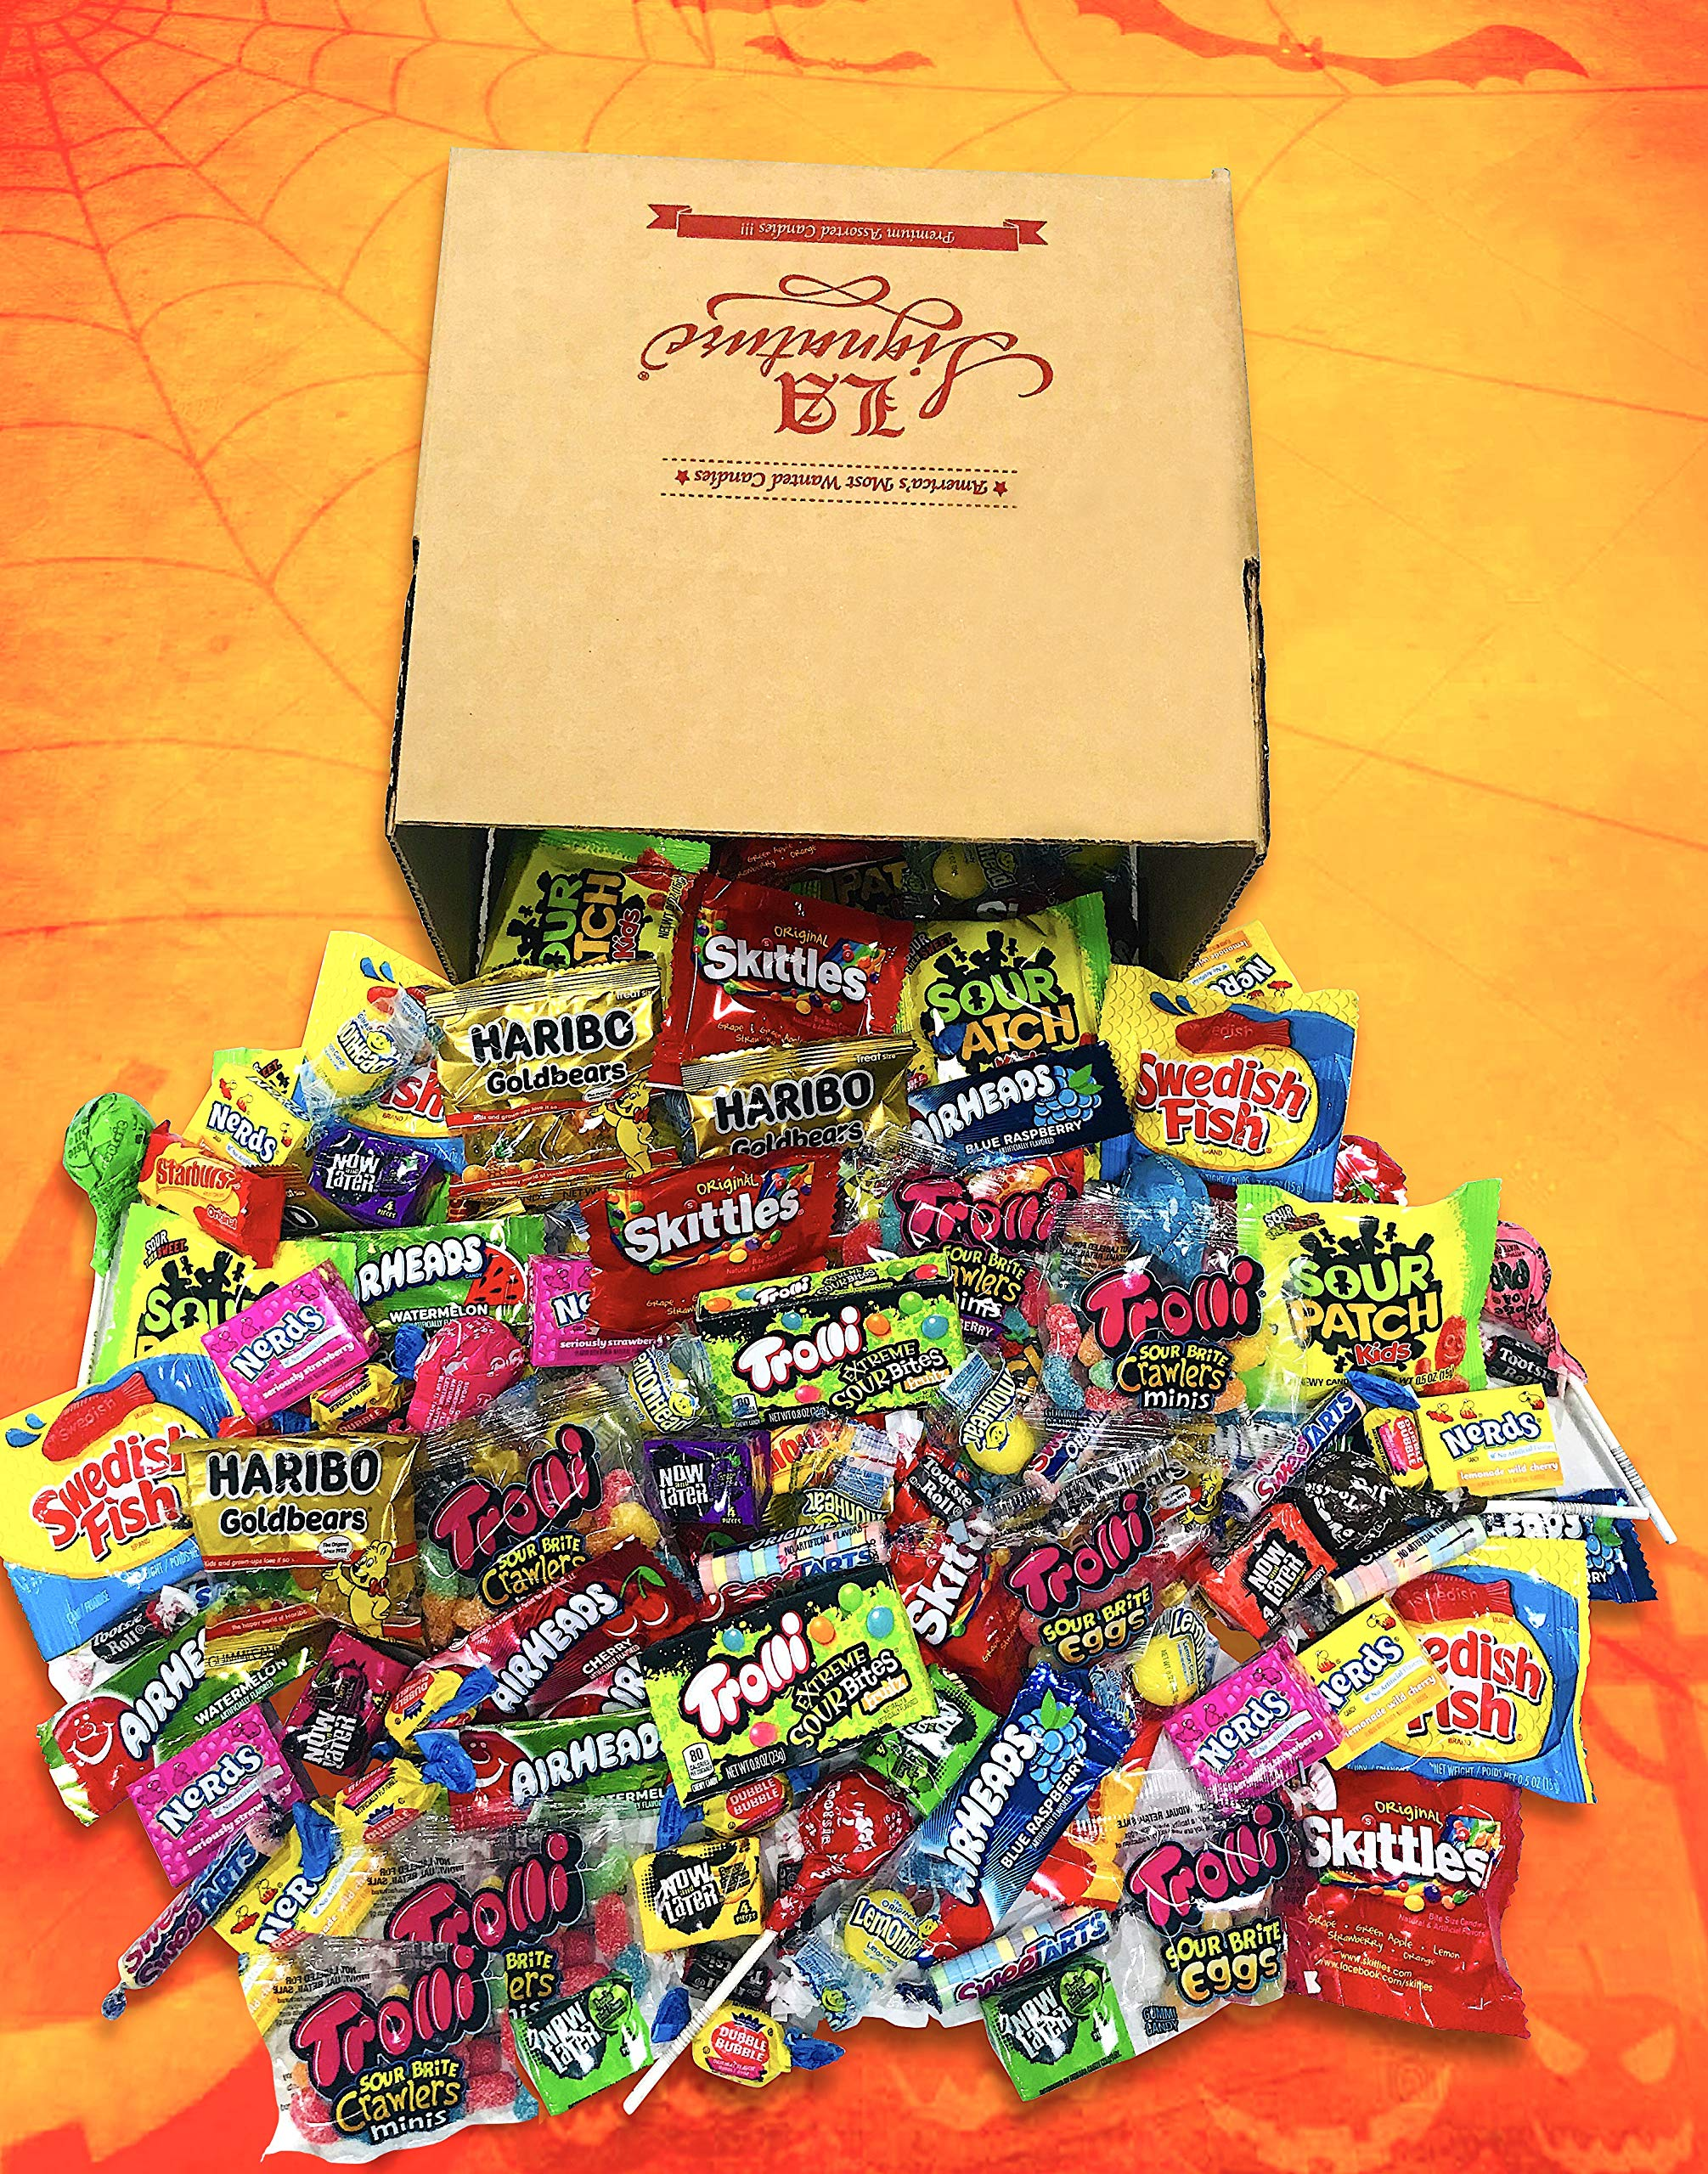 FUN MIX ASSORTED Variety BULK Individually Wrapped Candies, 56 OZ (3.5 LBS) - Skittles, Haribo Gold Bears, Sour Patch Kids, Swedish Fish, Starburst, Lemondheads, Trolli, Now & Later & More by LA Signature